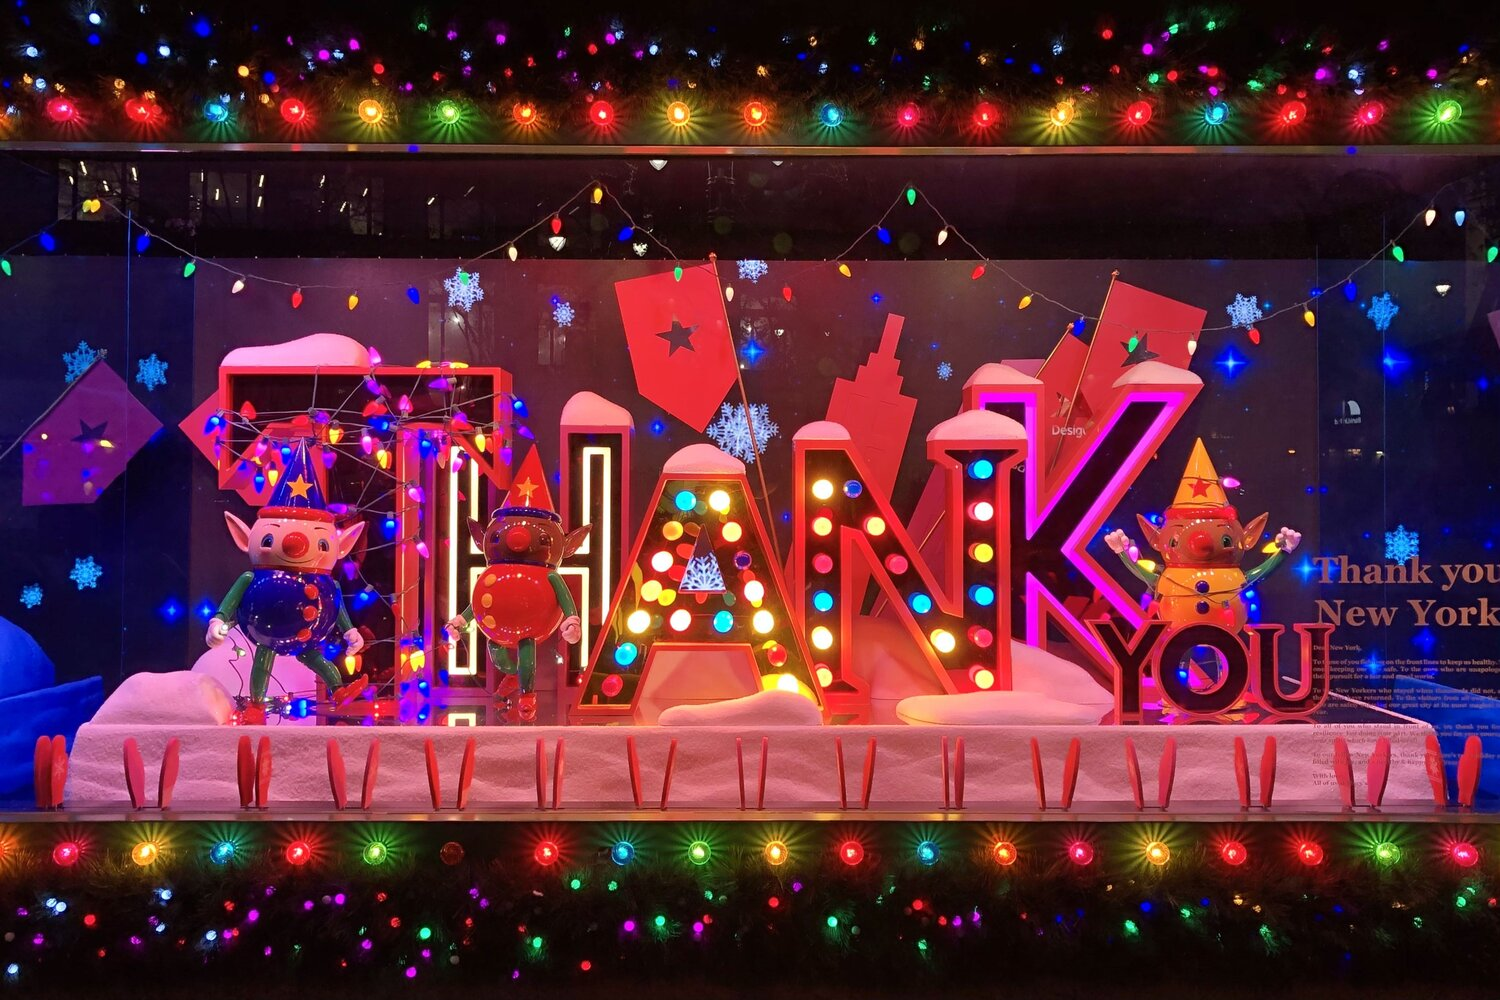 Christmas Windows New York 2021 12 Beautiful Christmas Windows To See In Nyc Updated For 2020 Marcofeng